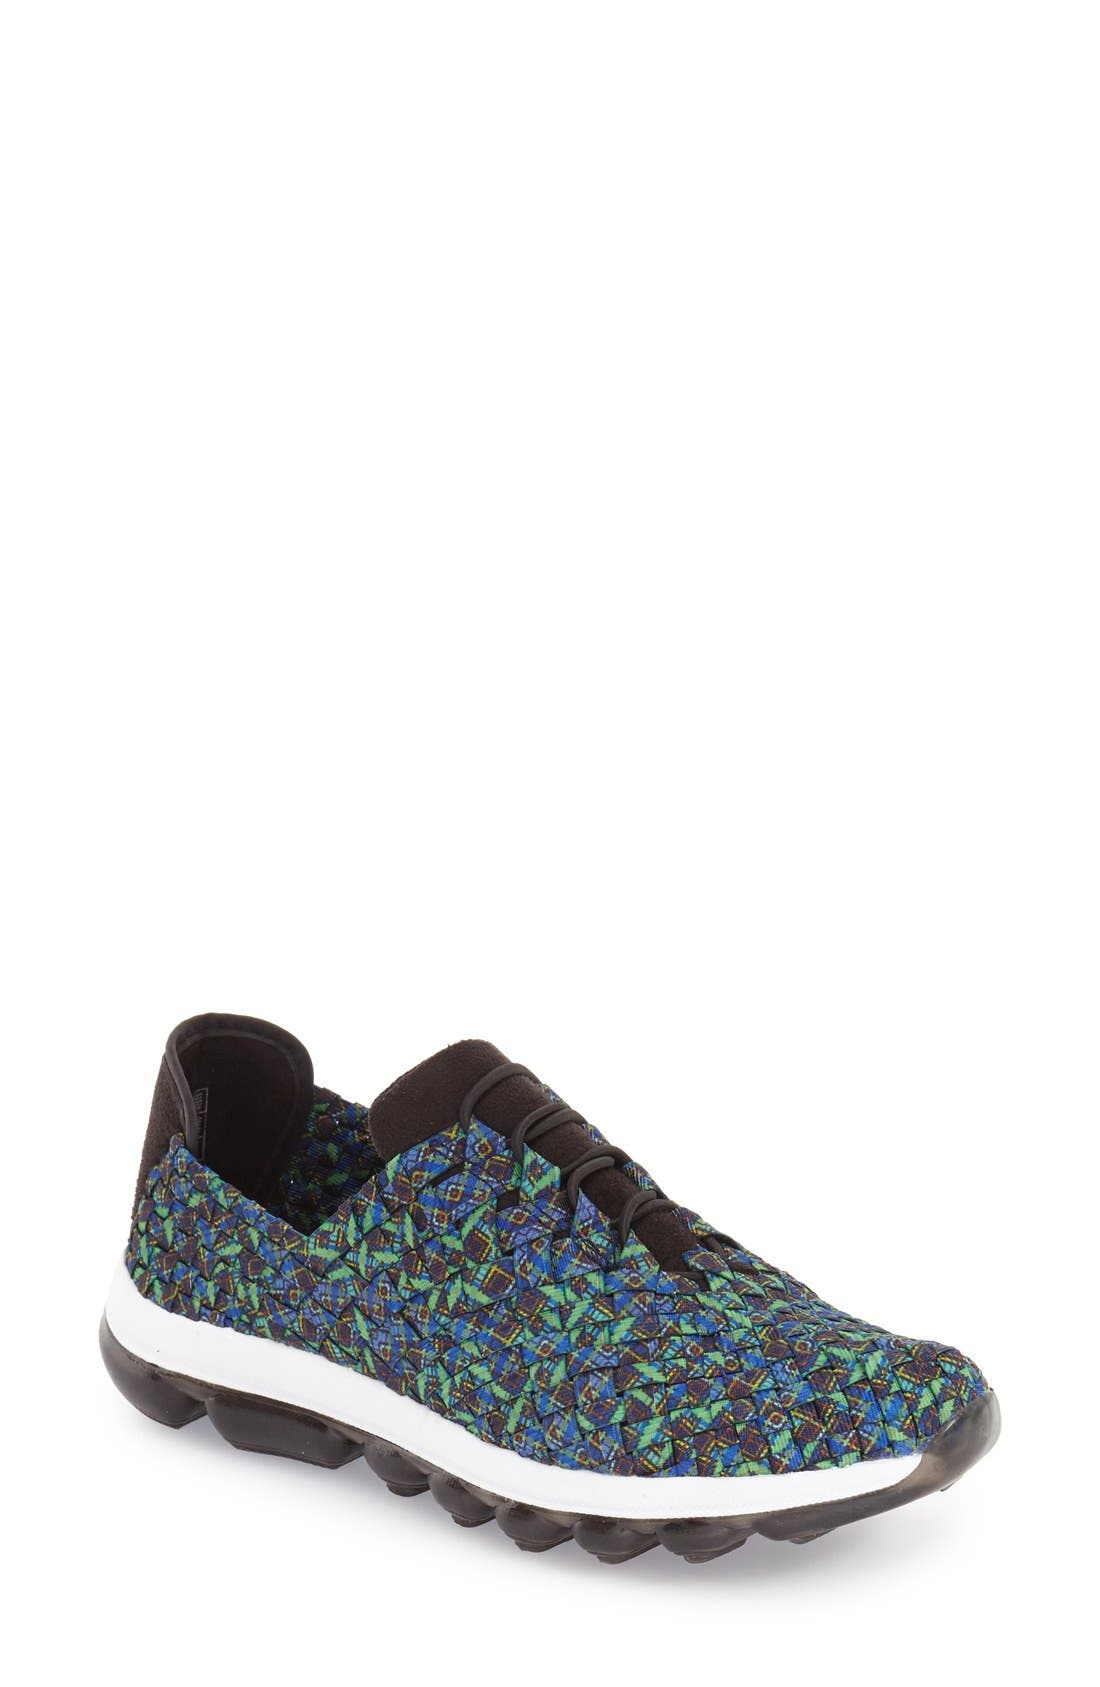 BERNIE MEV. 'Gummies Victoria' Stretch Woven Slip-On Sneaker